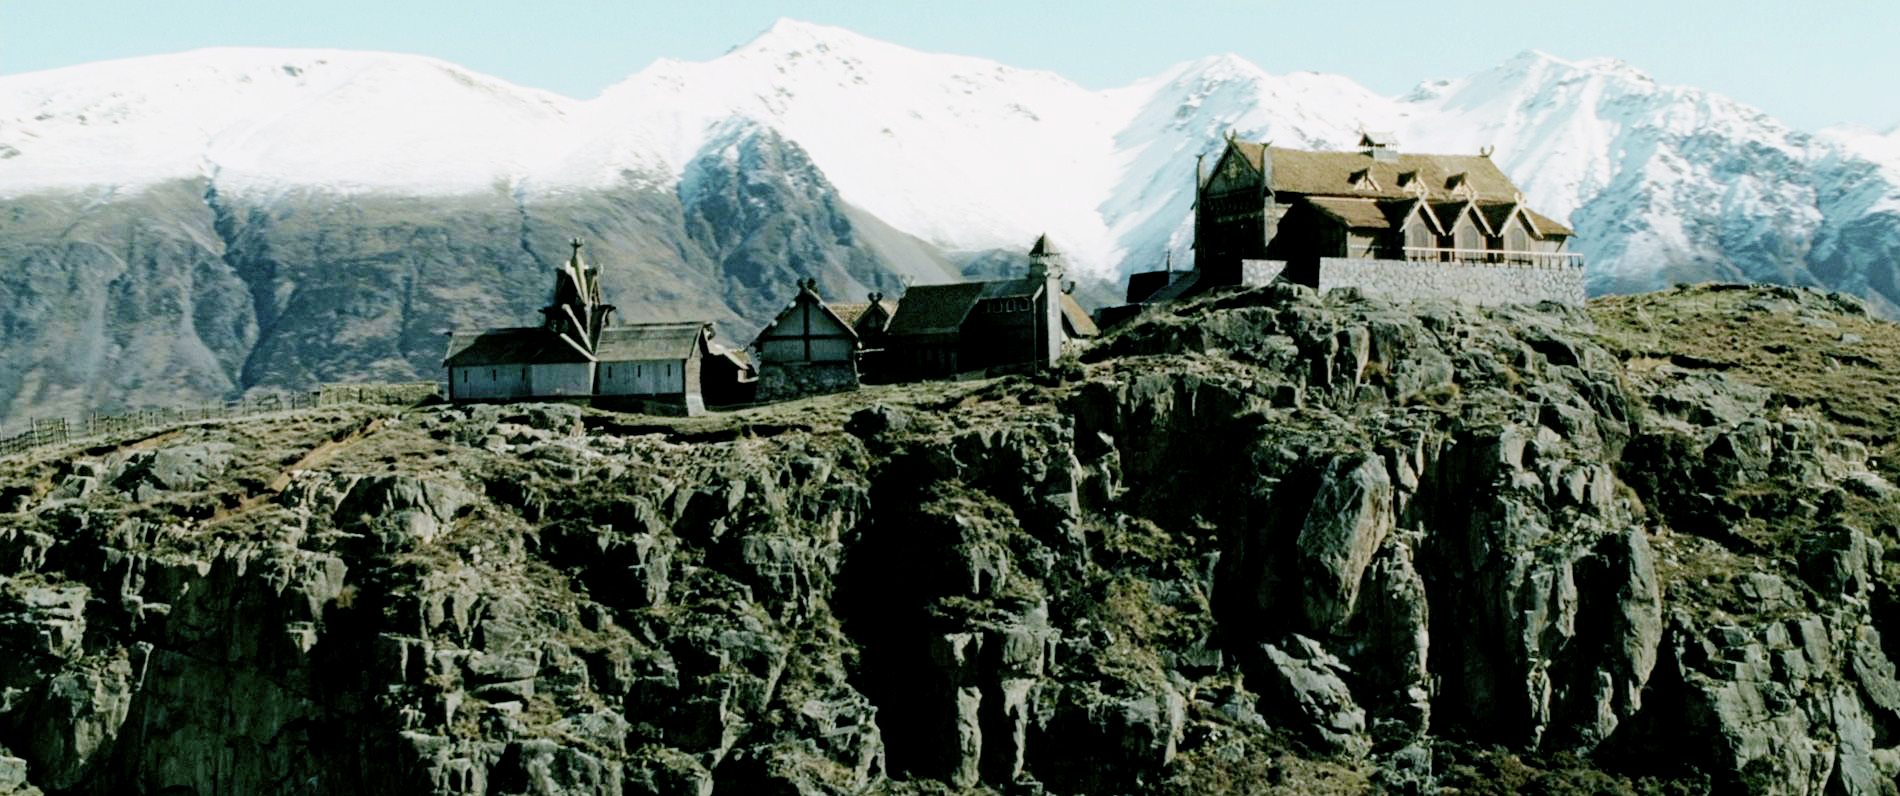 edoras wallpaper - photo #36